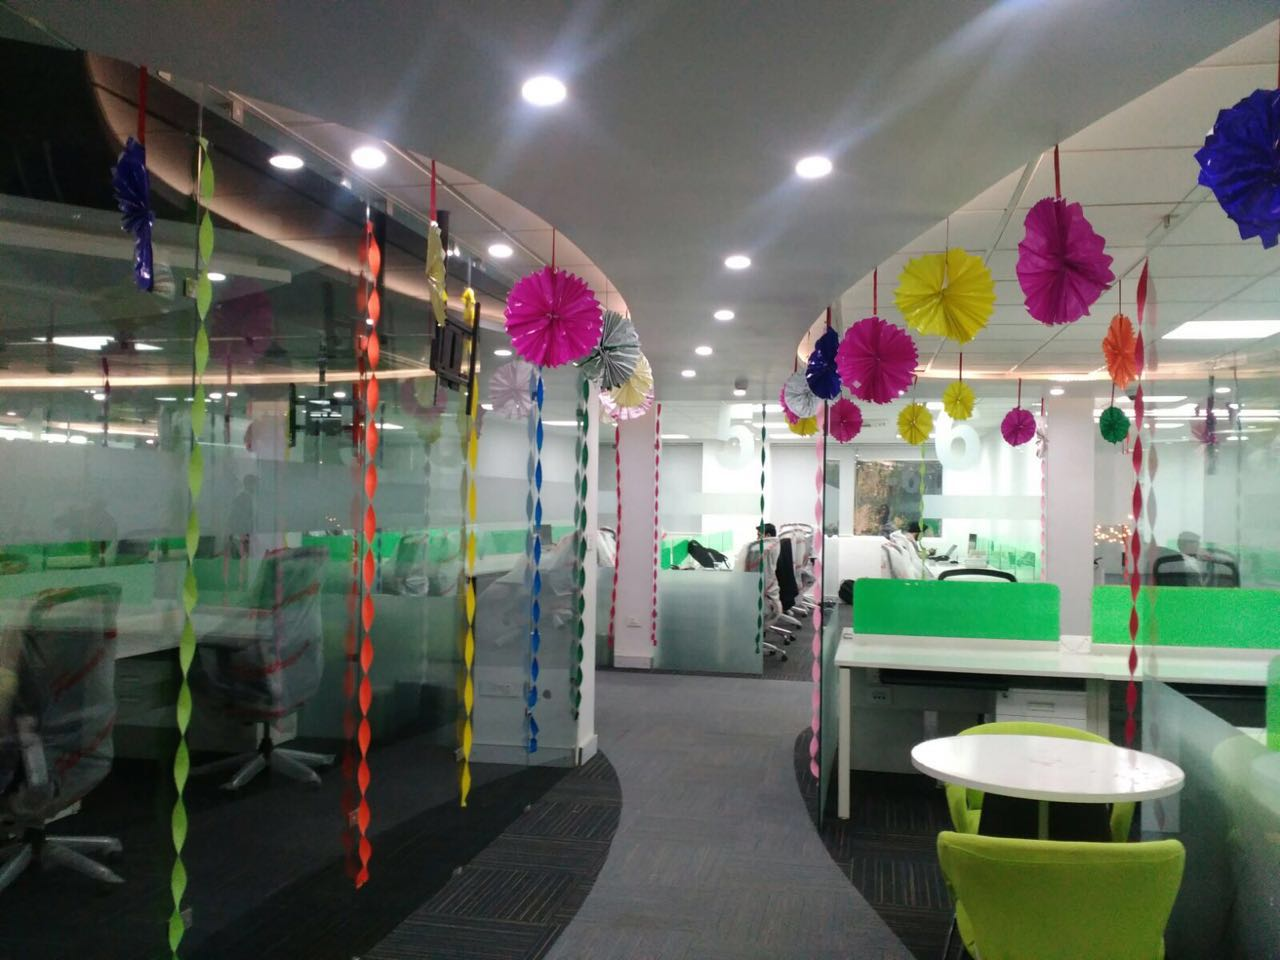 Office decked up during Diwali